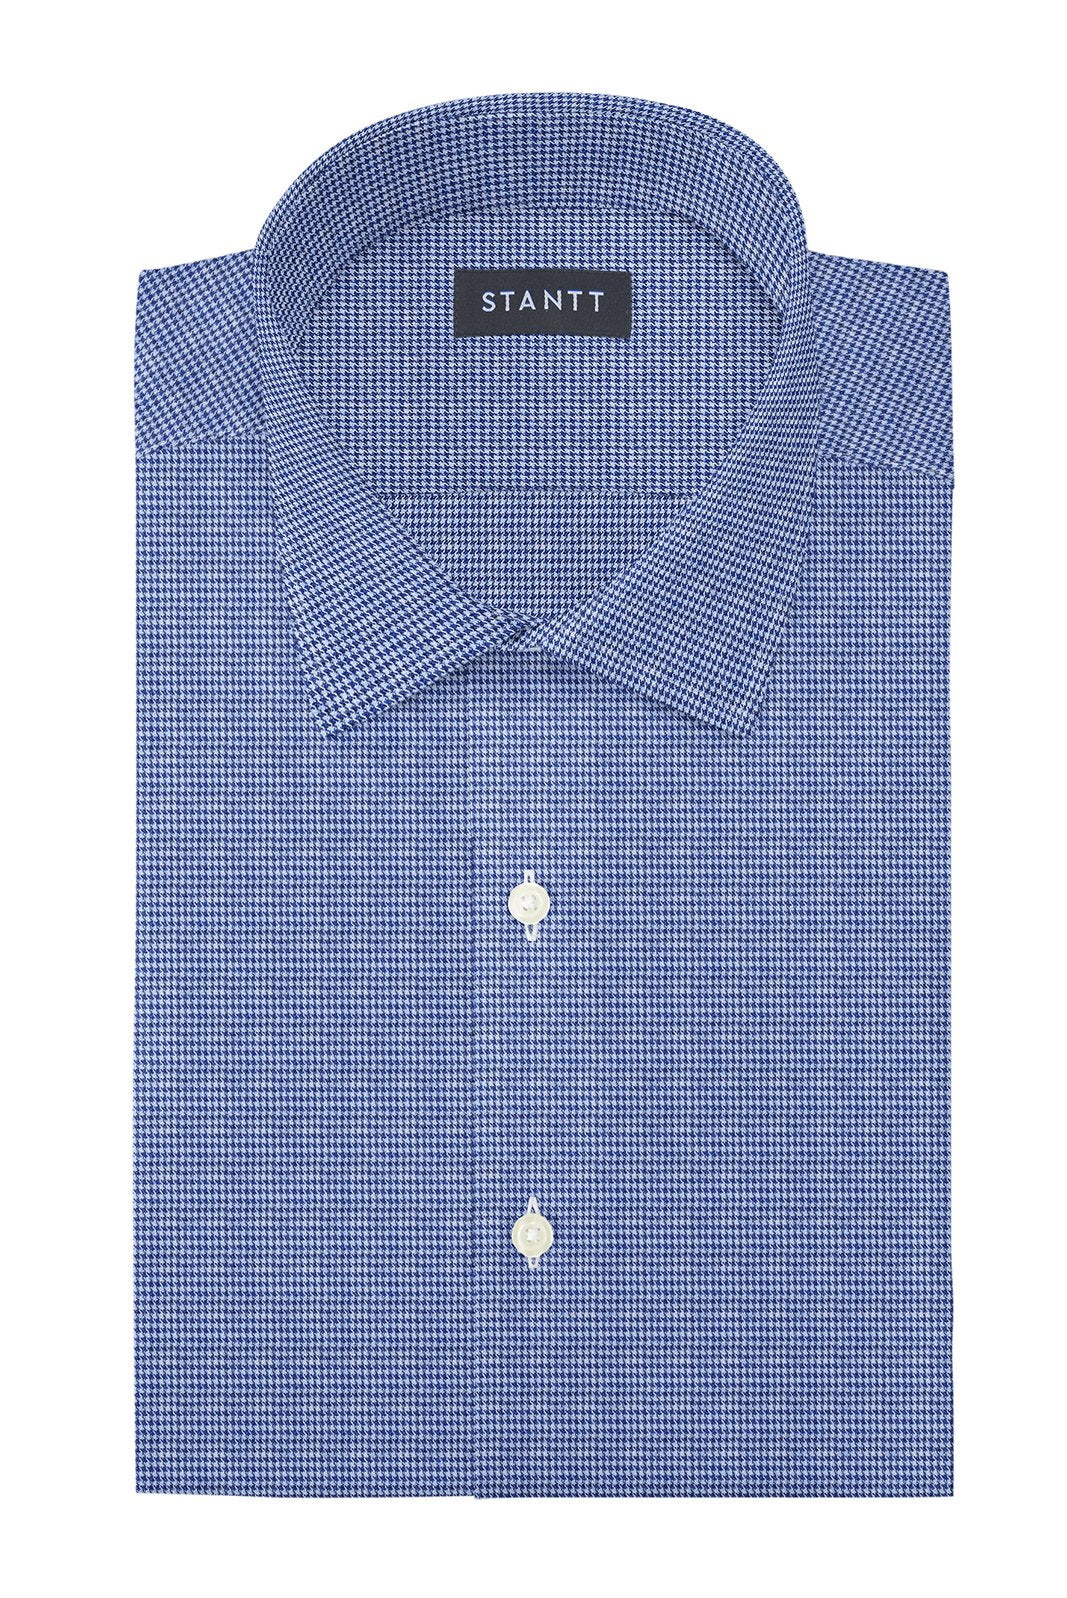 Slate Blue Houndstooth Flannel: Modified-Spread Collar, French Cuff